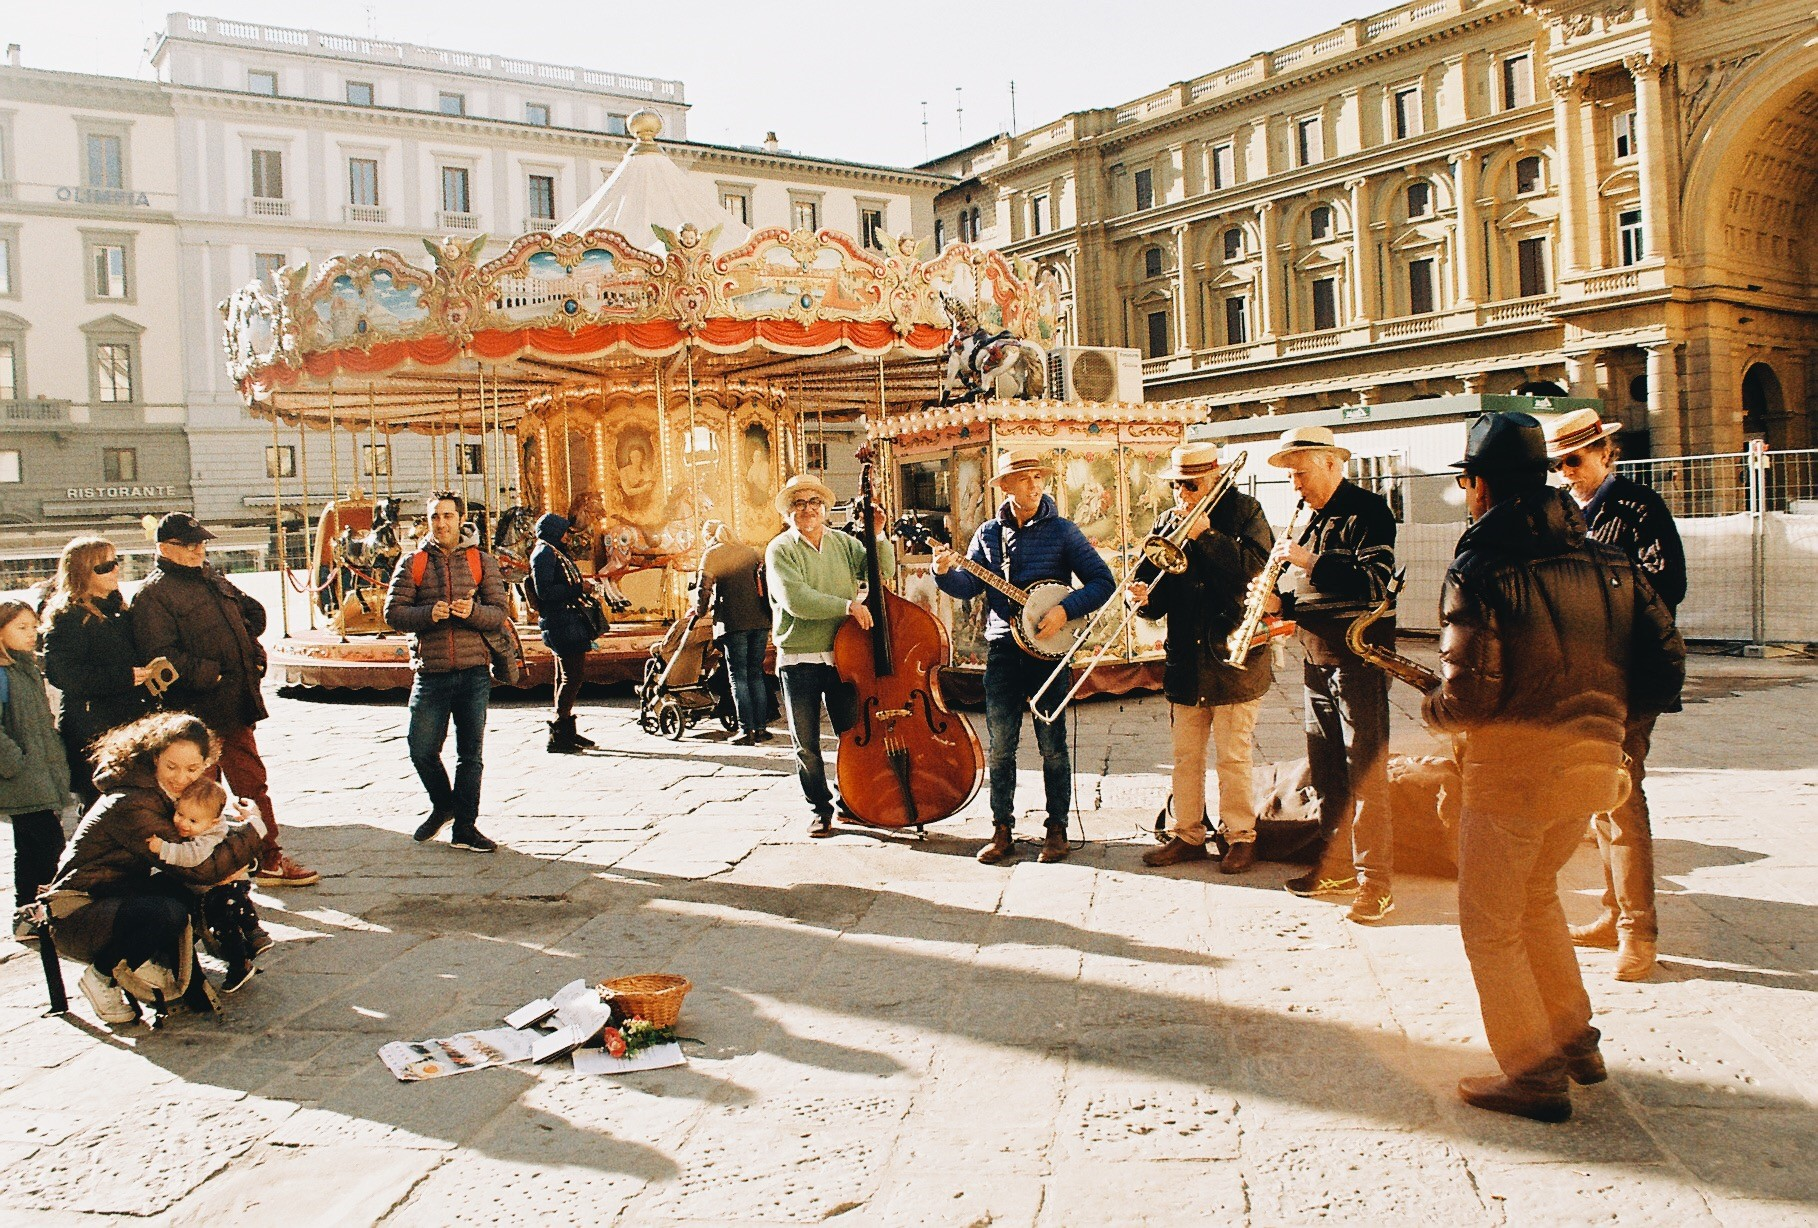 CAPAStudyAbroad_Florence_Fall2018_Payton Meyer_Piazza della Repubblica Carousel and Musicians_35 mm Film